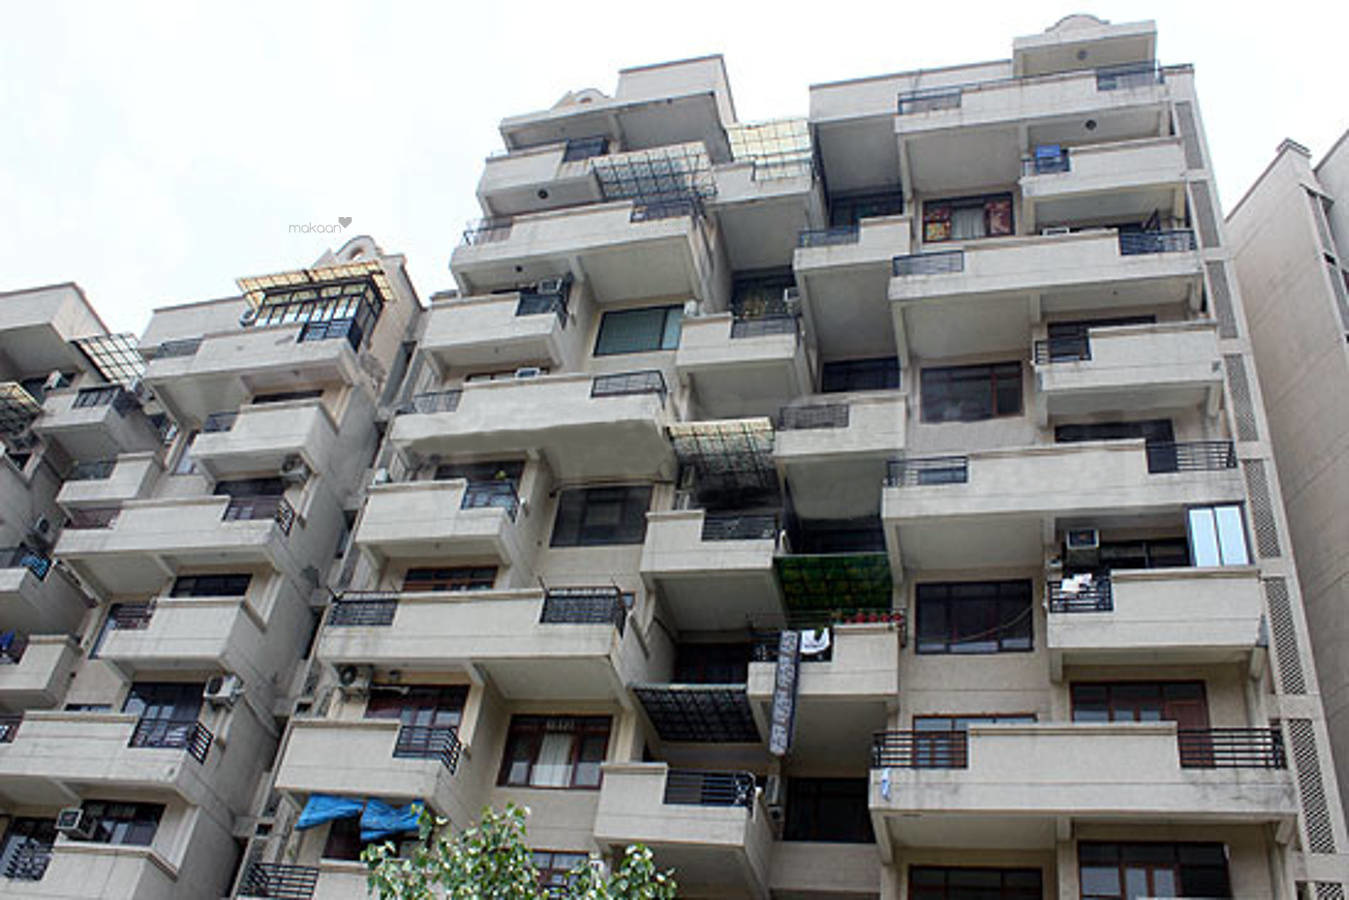 1650 sq ft 3BHK 3BHK+3T (1,650 sq ft) + Servant Room Property By Property Space In Youngsters, Sector 6 Dwarka